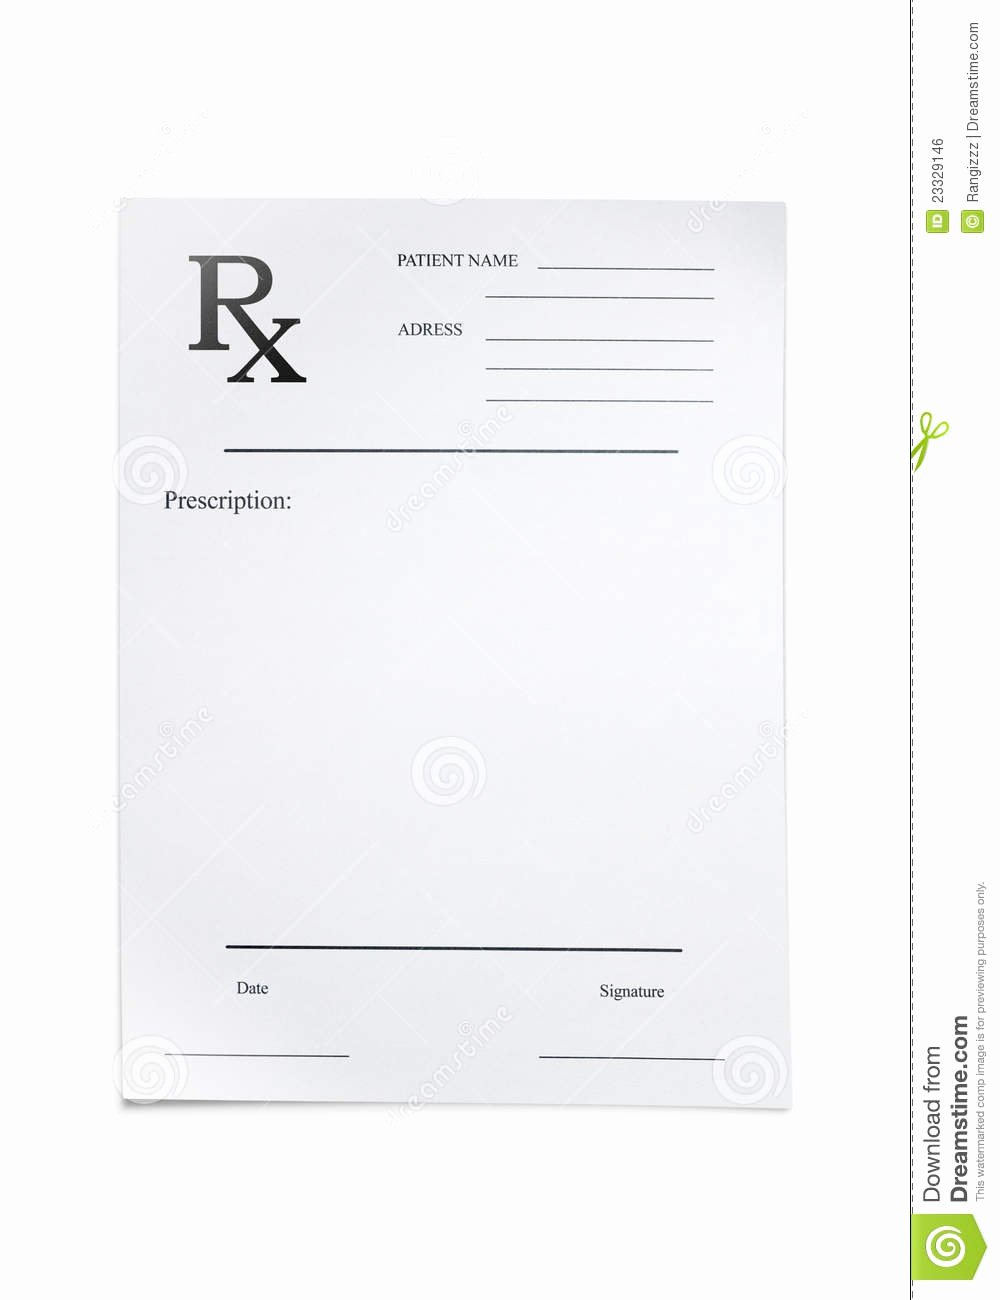 Doctor Prescription Pad Template Elegant Doctors Prescription Stock Photo Image Of Cost Blank